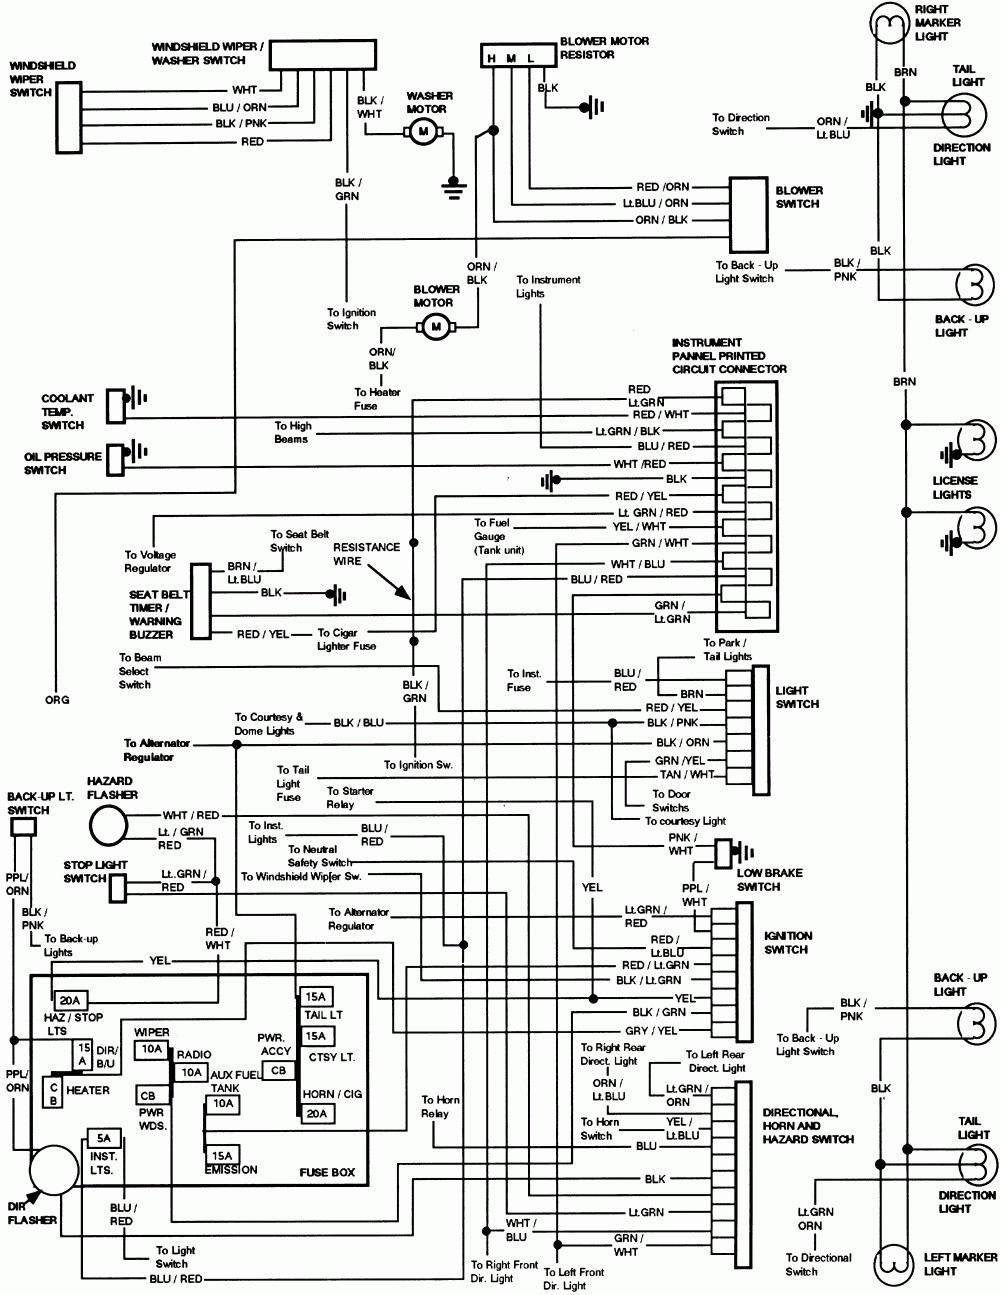 hight resolution of 1943 ford wiring diagram wiring diagrams secondford gp wiring schematic wiring diagram article review 1943 ford